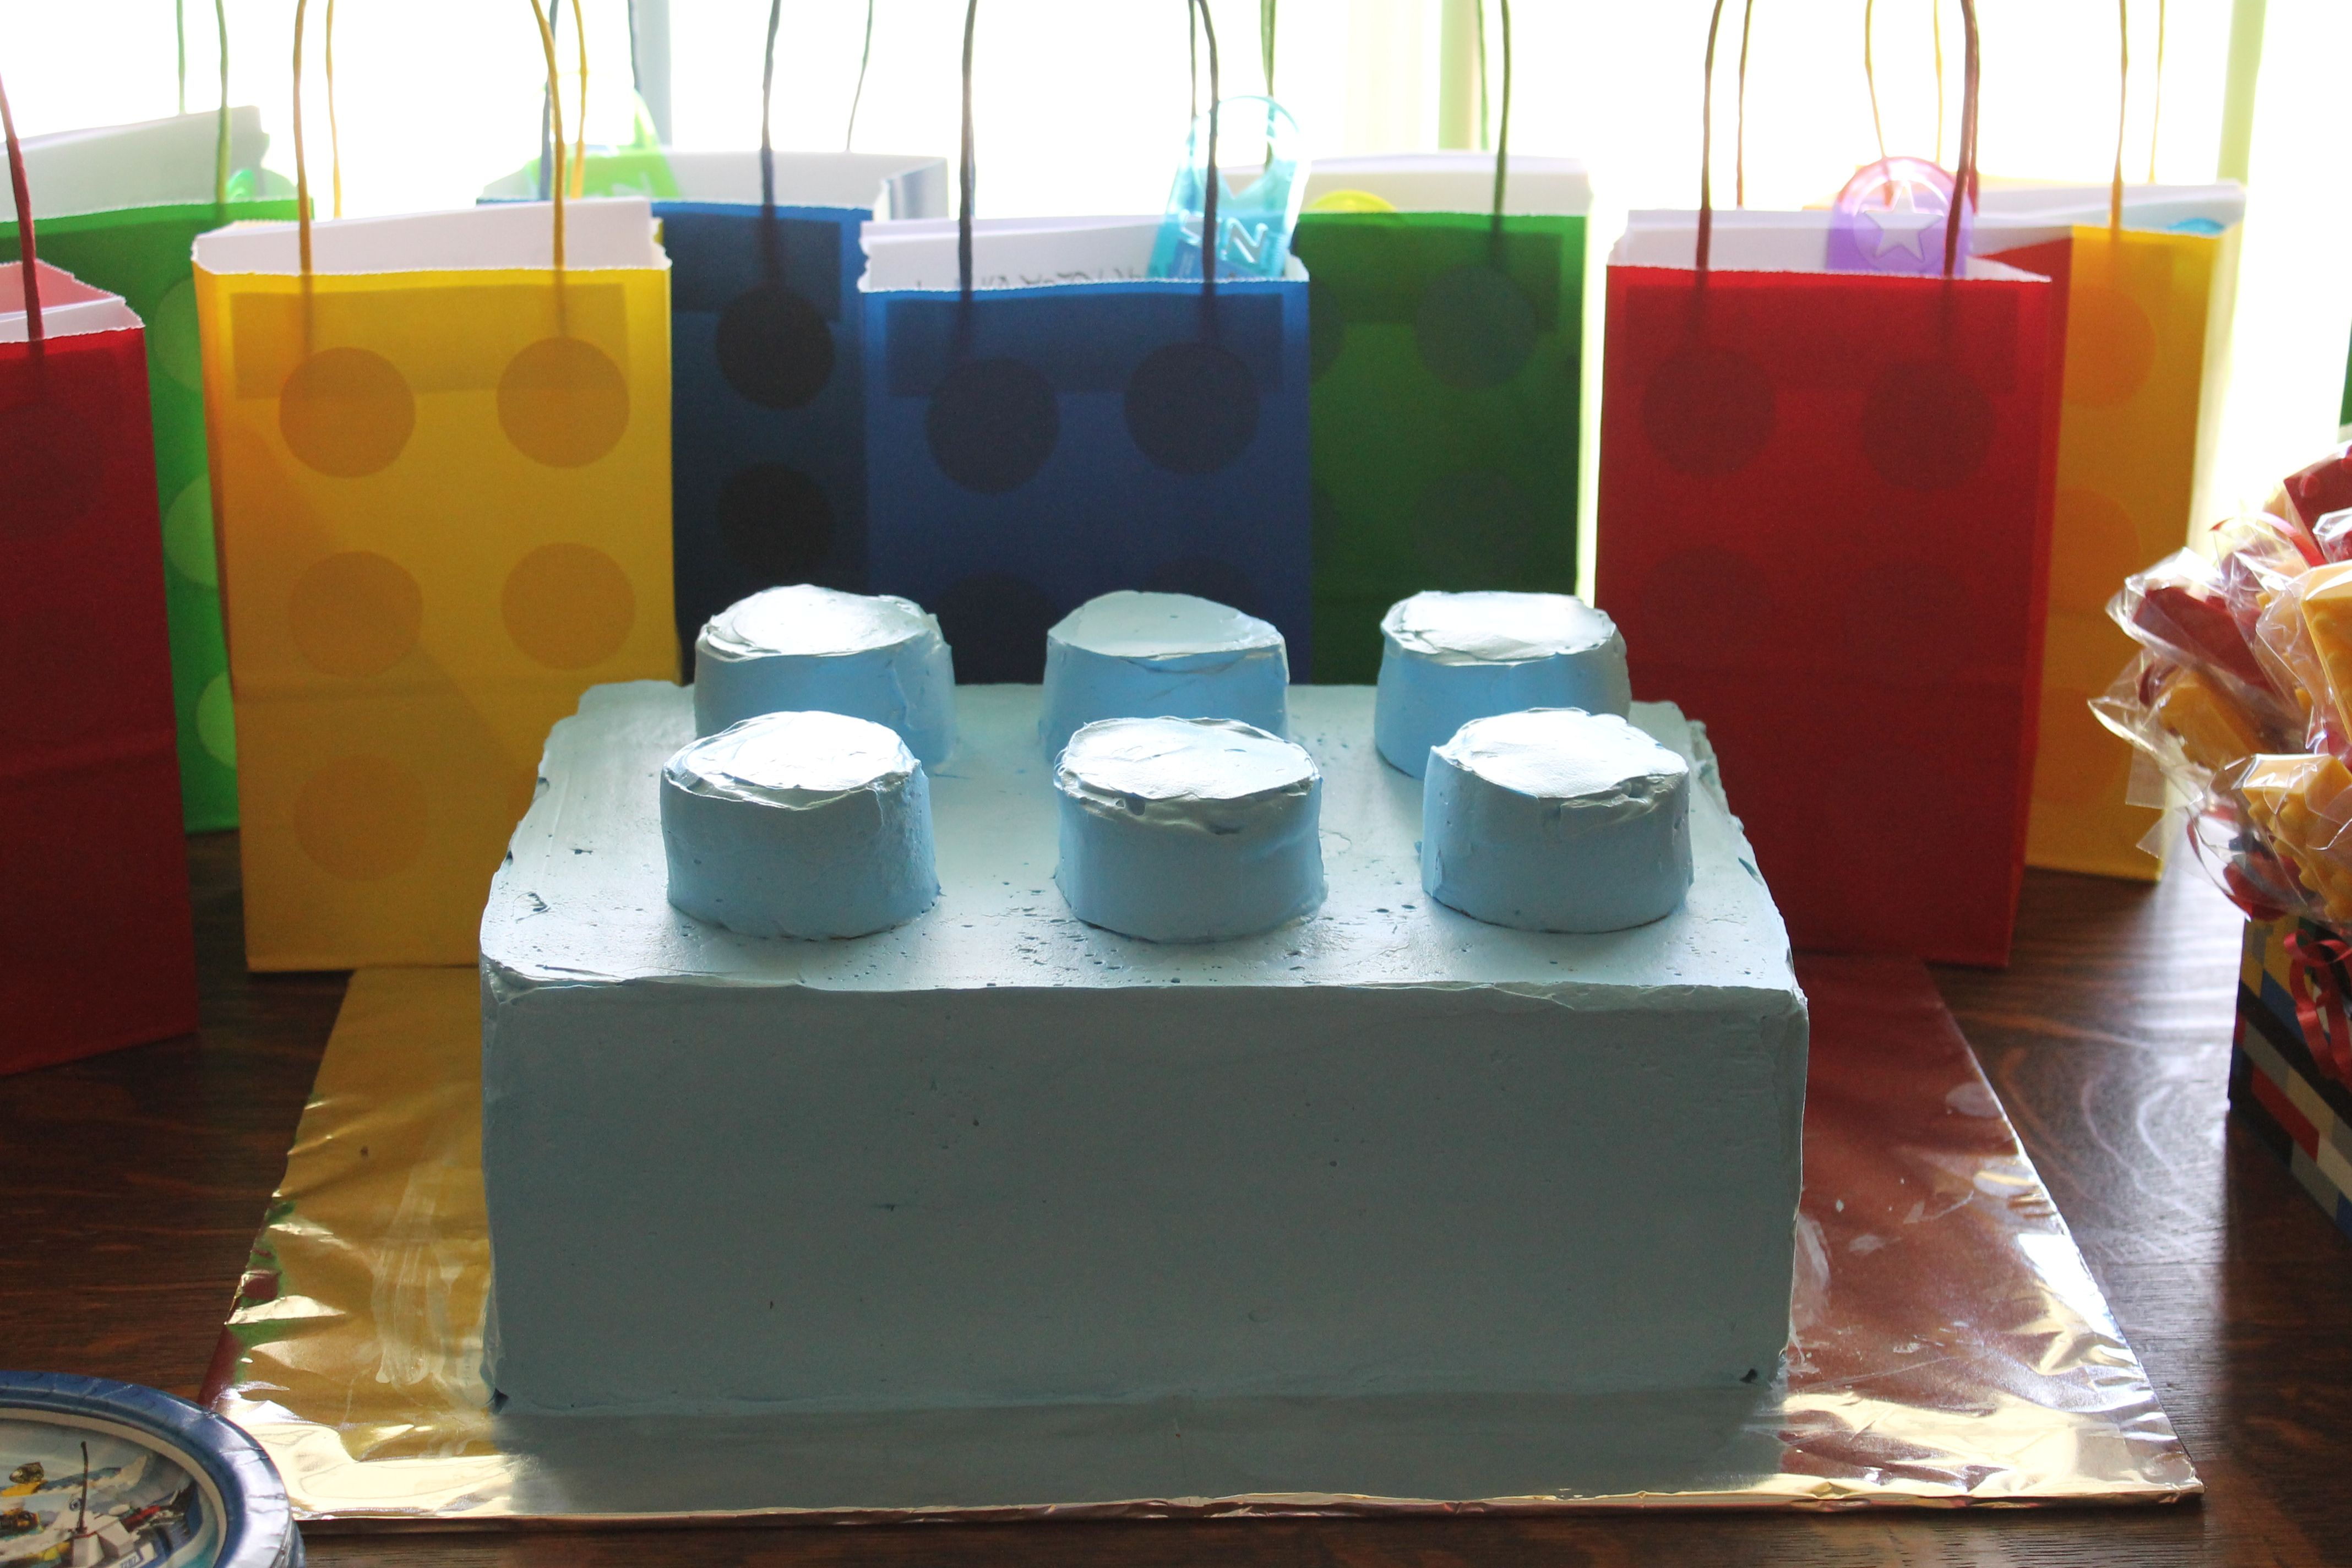 Lego cake and gift bags